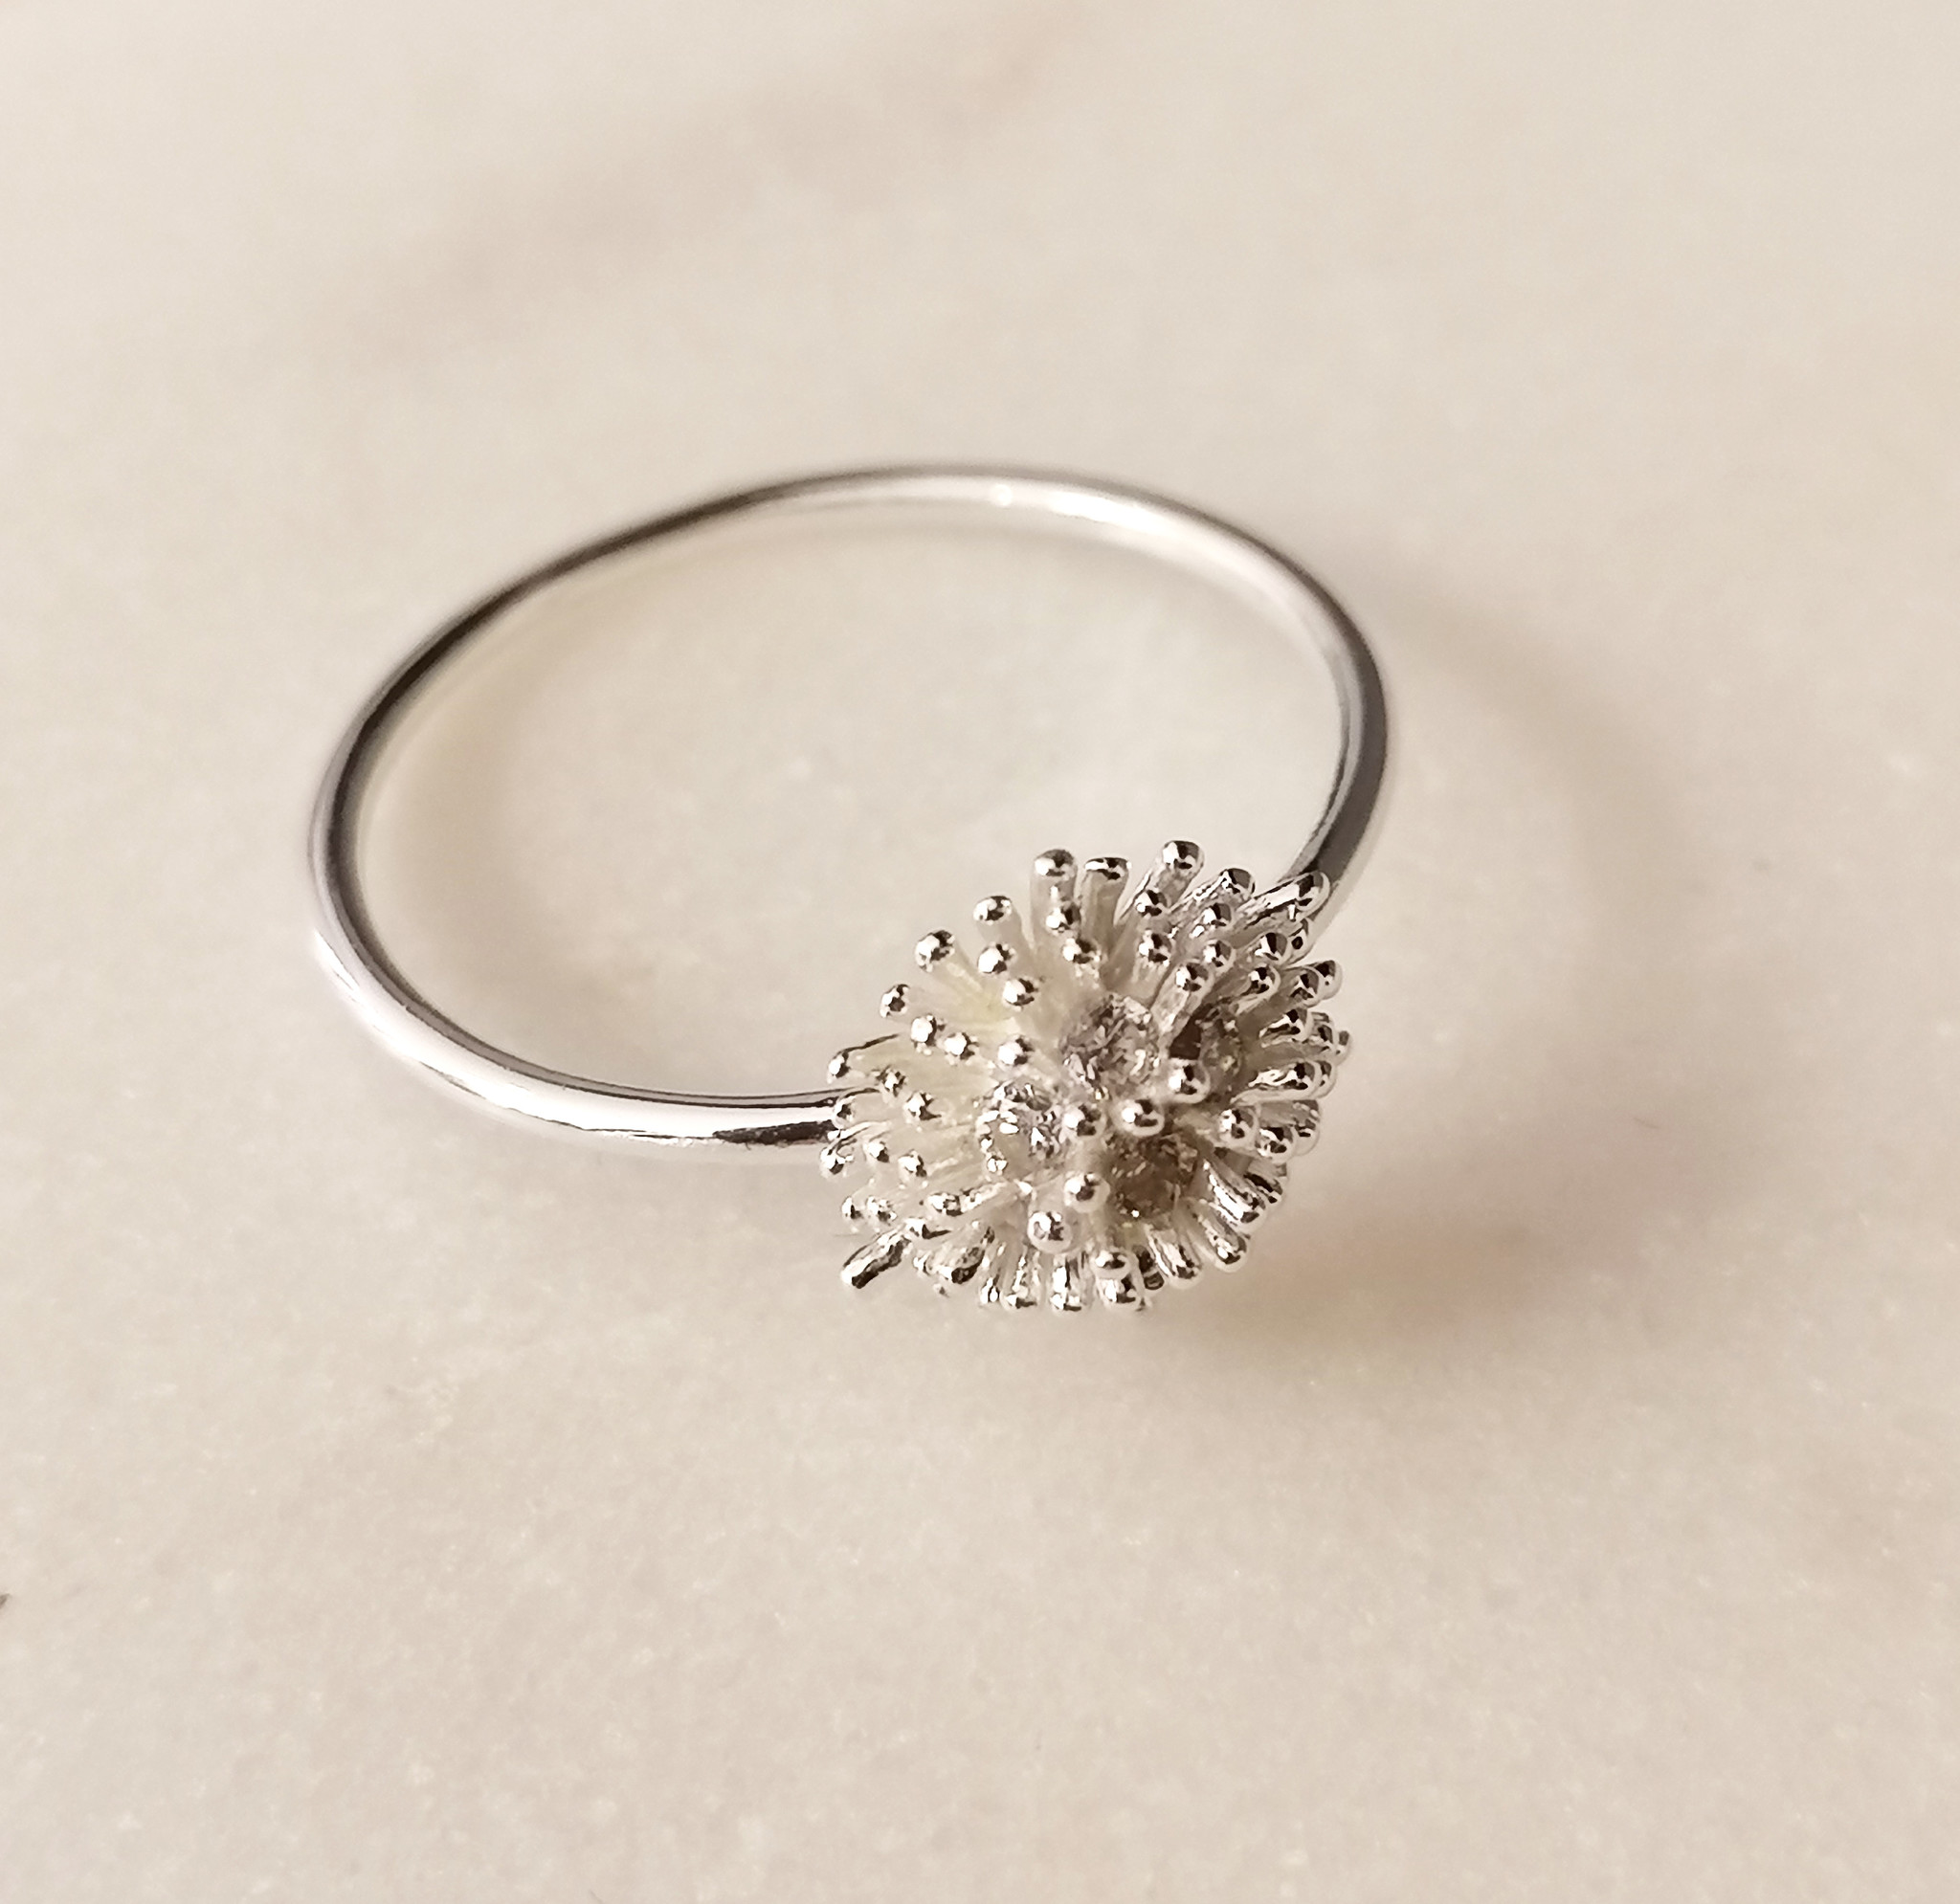 Fancy ring made of 925 sterling silver-4